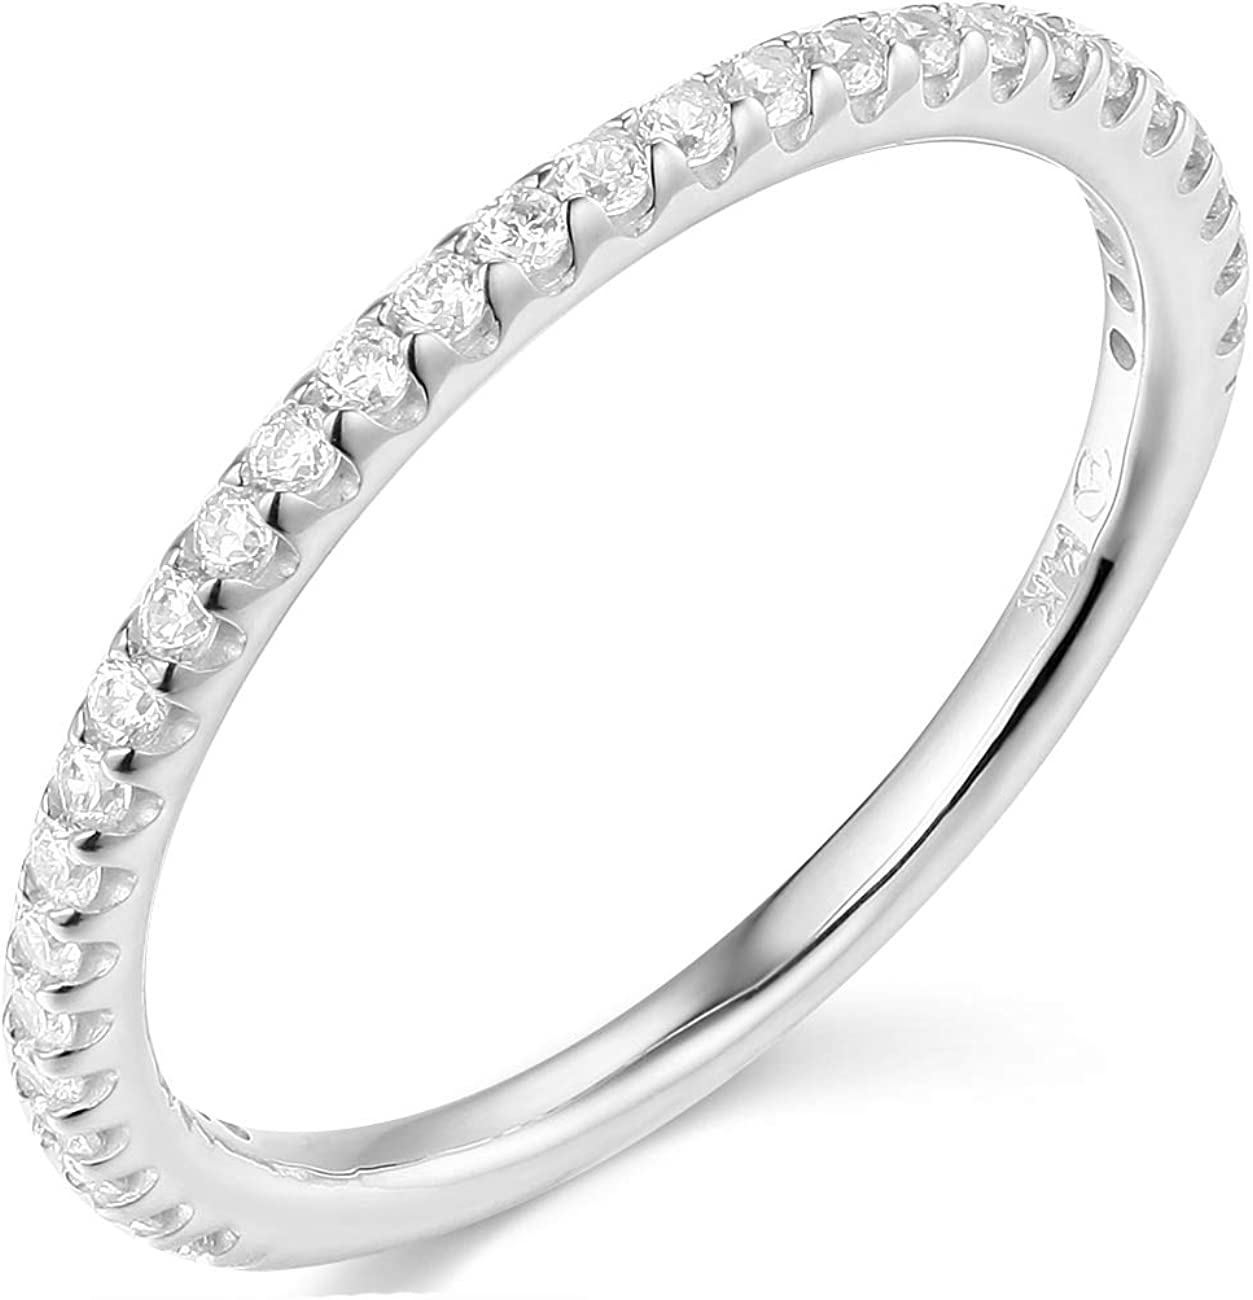 TWJC 14k Yellow OR White Solid SALENEW very popular! Gold Animer and price revision Wedding Band